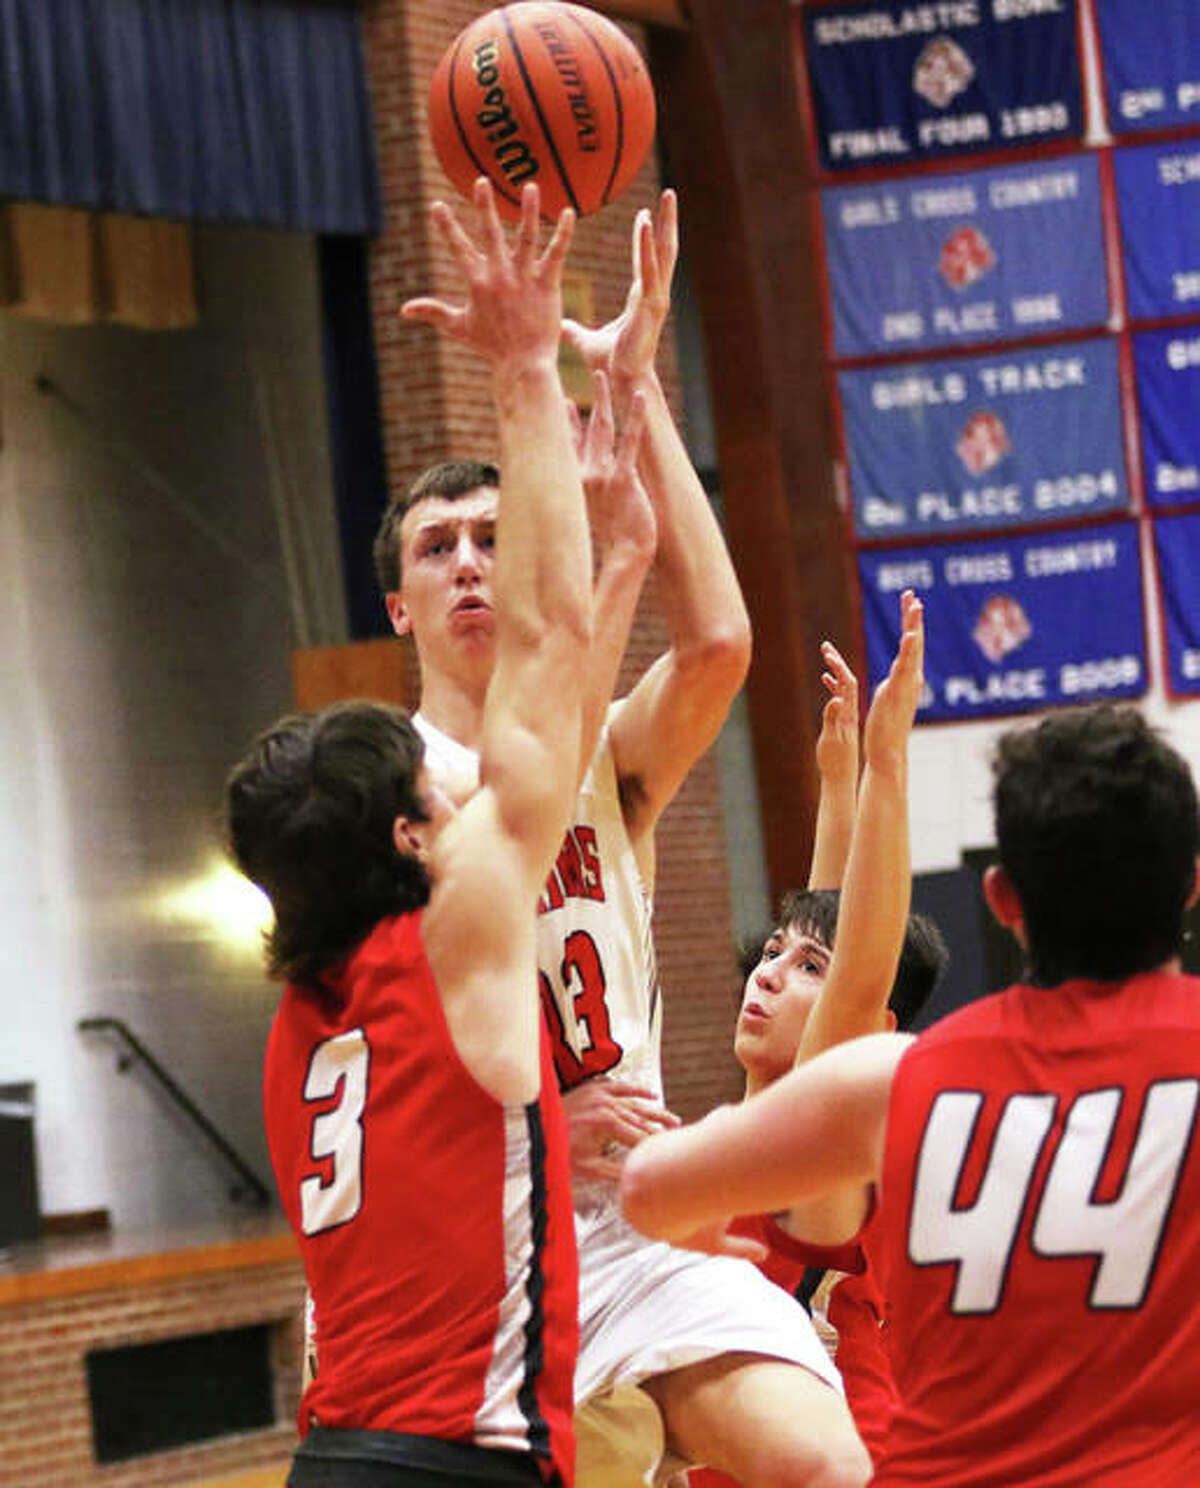 Calhoun's Corey Nelson, shown shooting over Staunton's Brent Kinder (3) during the title game at the Carlinville Holiday Tourney on Dec. 30, scored 15 points Thursday night in the Warriors' loss to unbeaten Payson Seymour in Hardin.